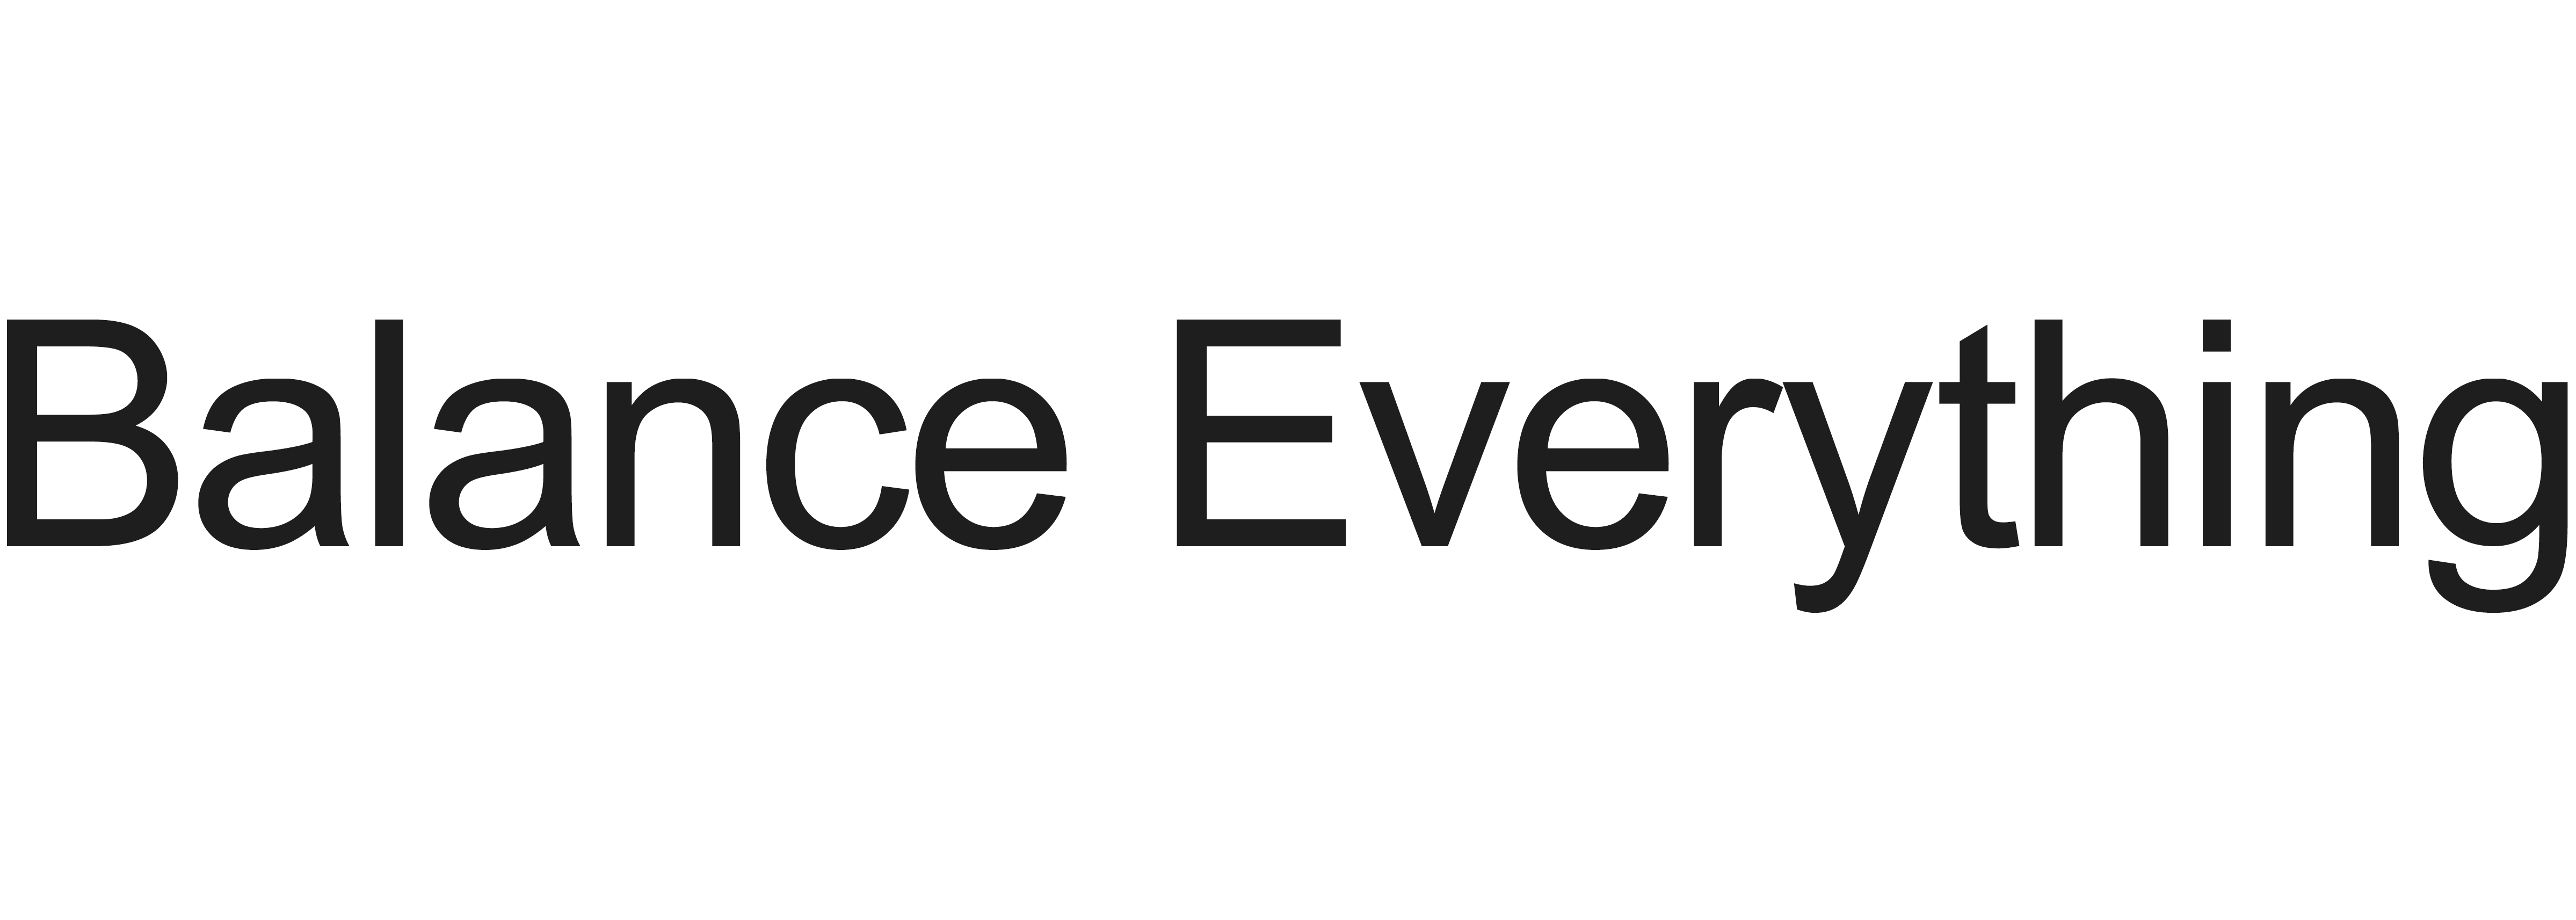 balance everything, banner, text, white background, black typography